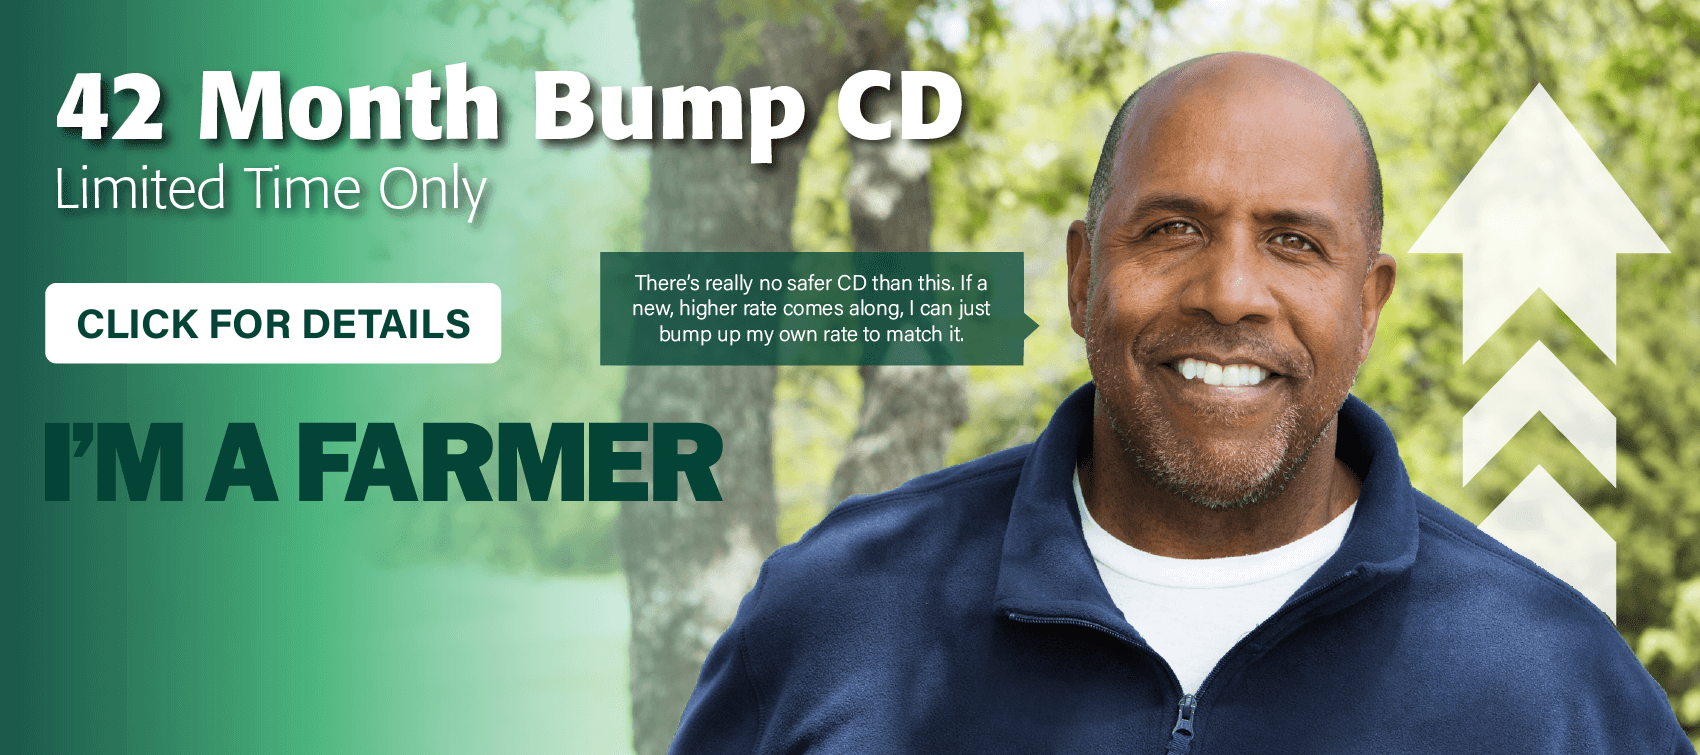 42 Month Bump CD - Click For Details